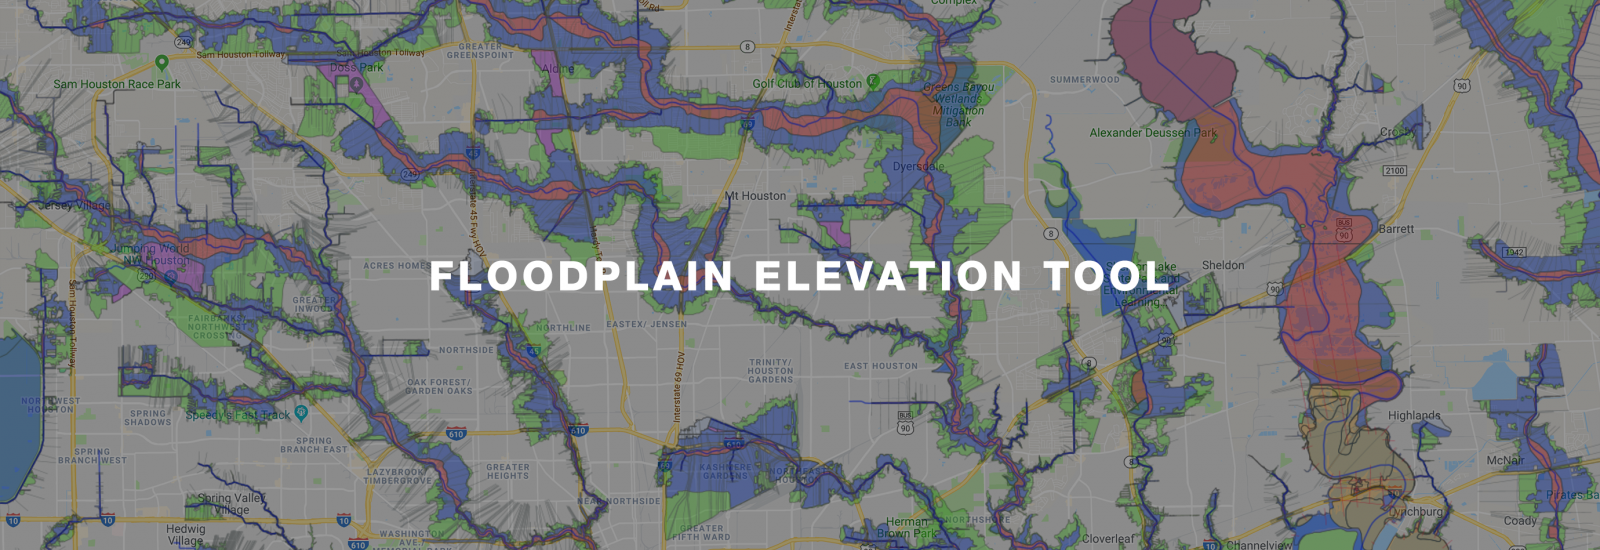 Floodplain Elevation Tool